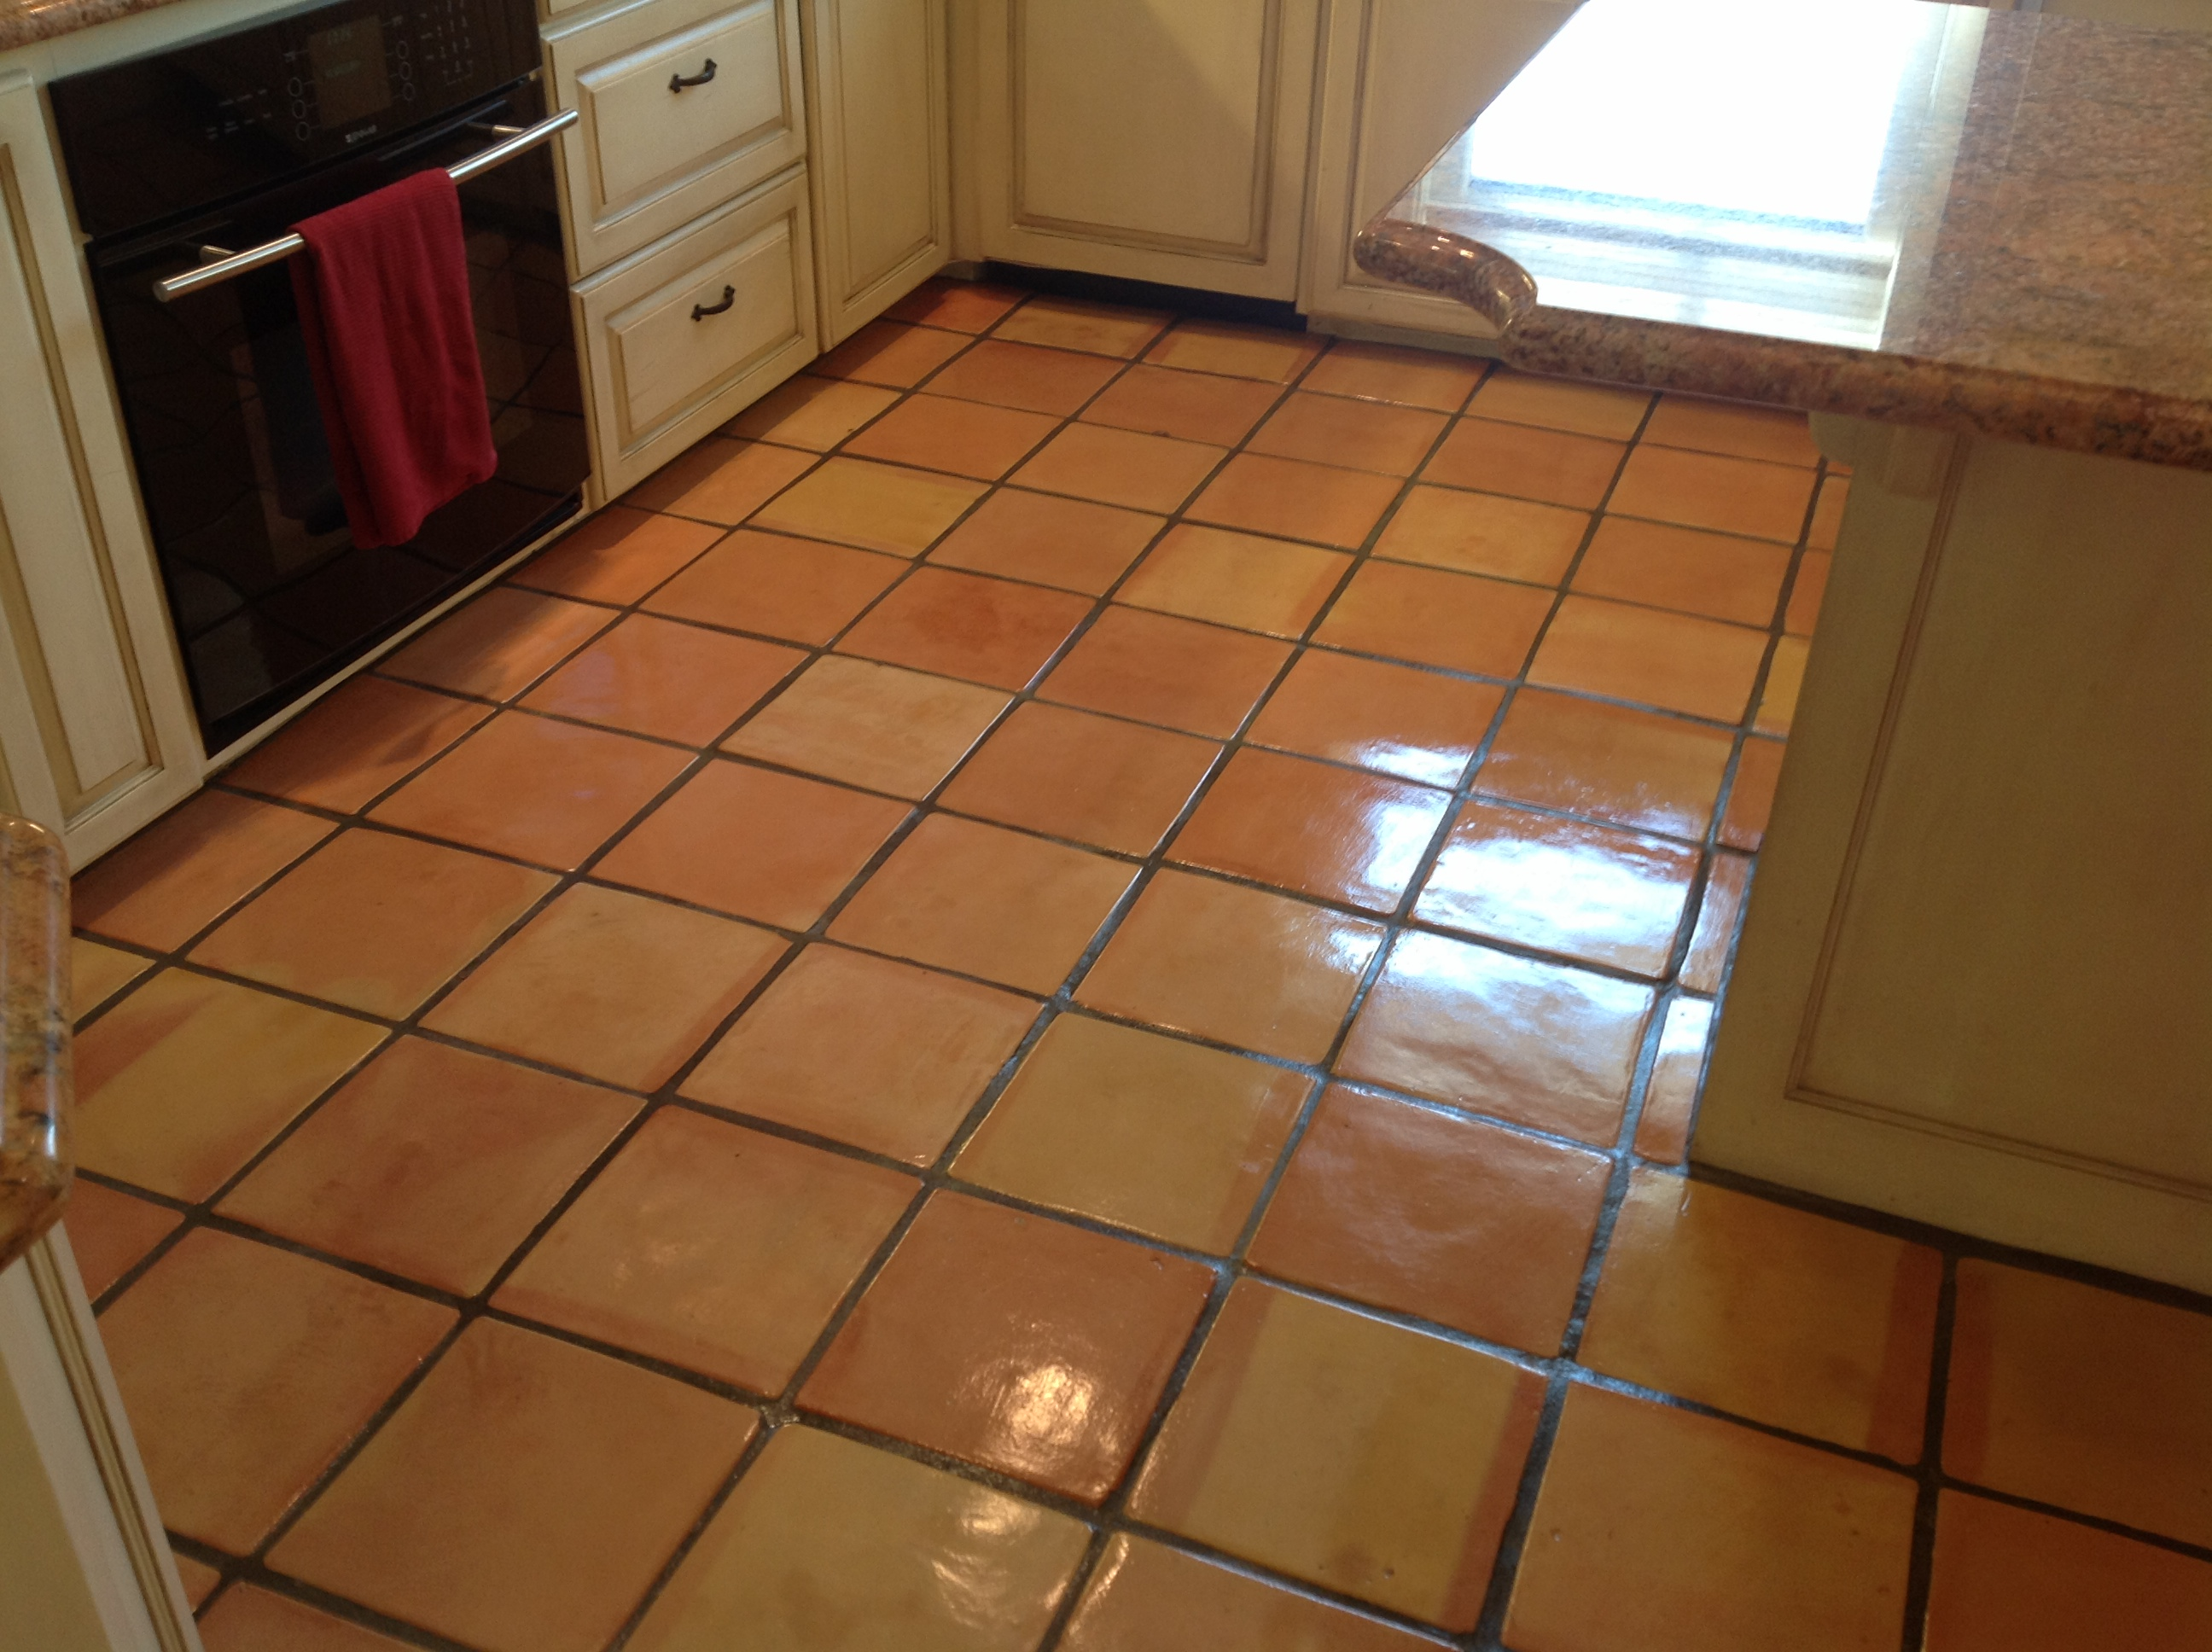 How To Clean Grout In Kitchen Tile Floor